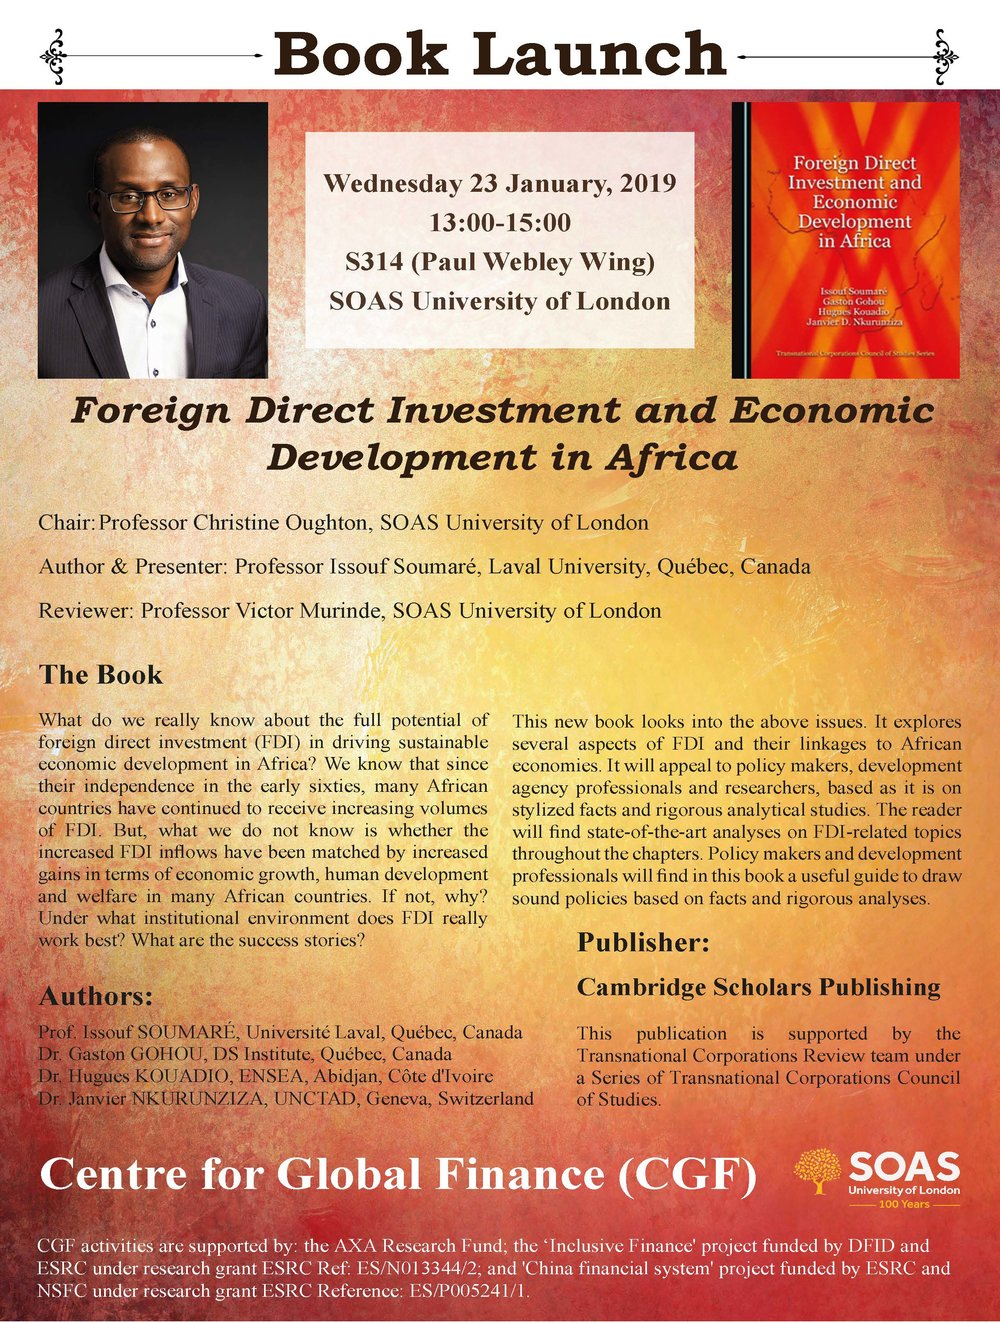 Book Launch Flyer -FDI and Economic Development in Africa.jpg